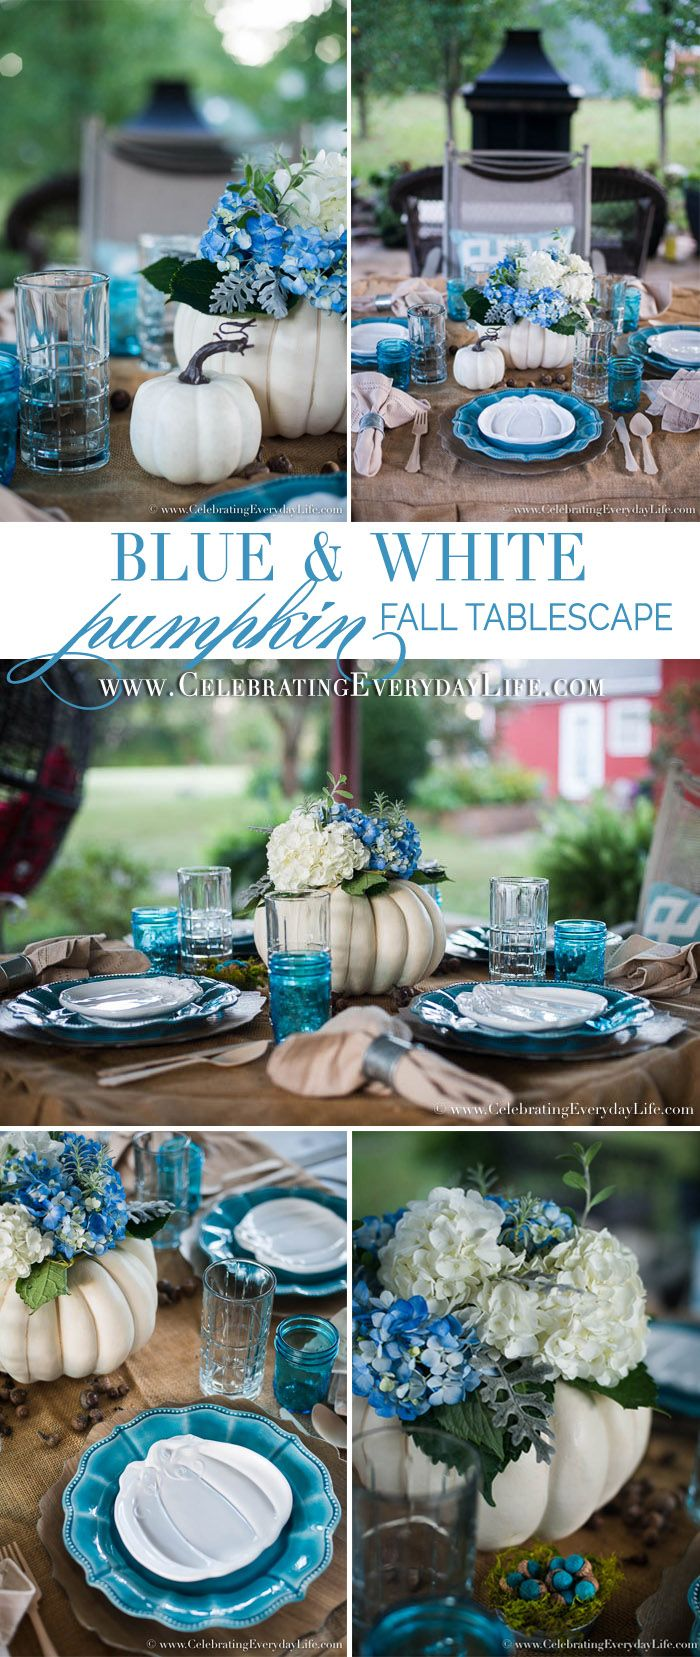 Put a fresh twist on traditional Thanksgiving Table Decorations with this Blue & White Pumpkin Fall Tablescape! It has Farmhouse Thanksgiving style!